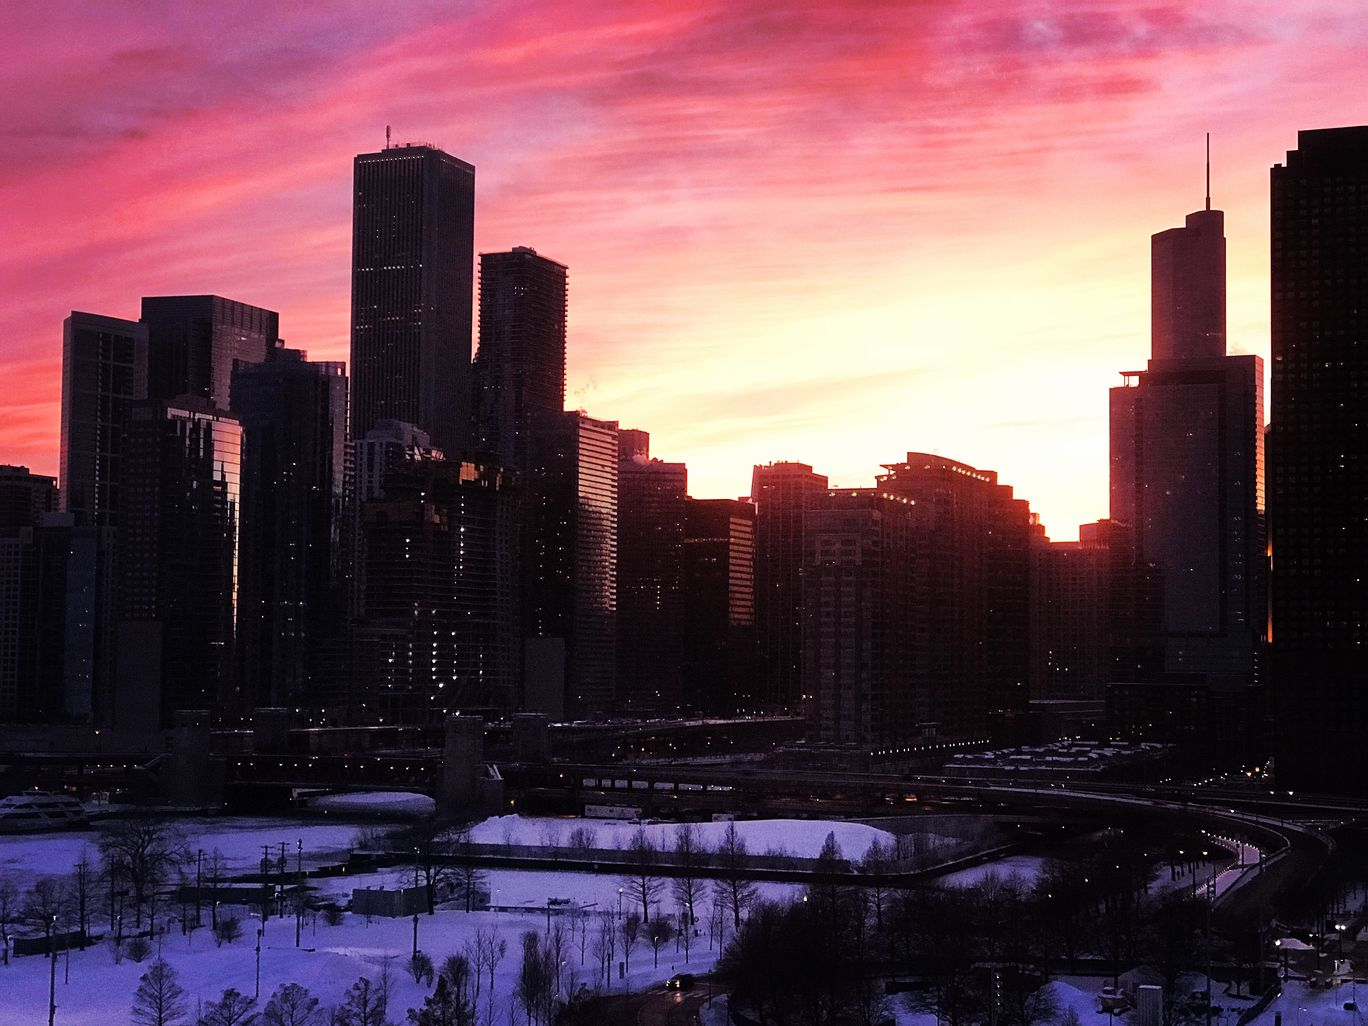 Photo of Chicago By Saurabh Sharma